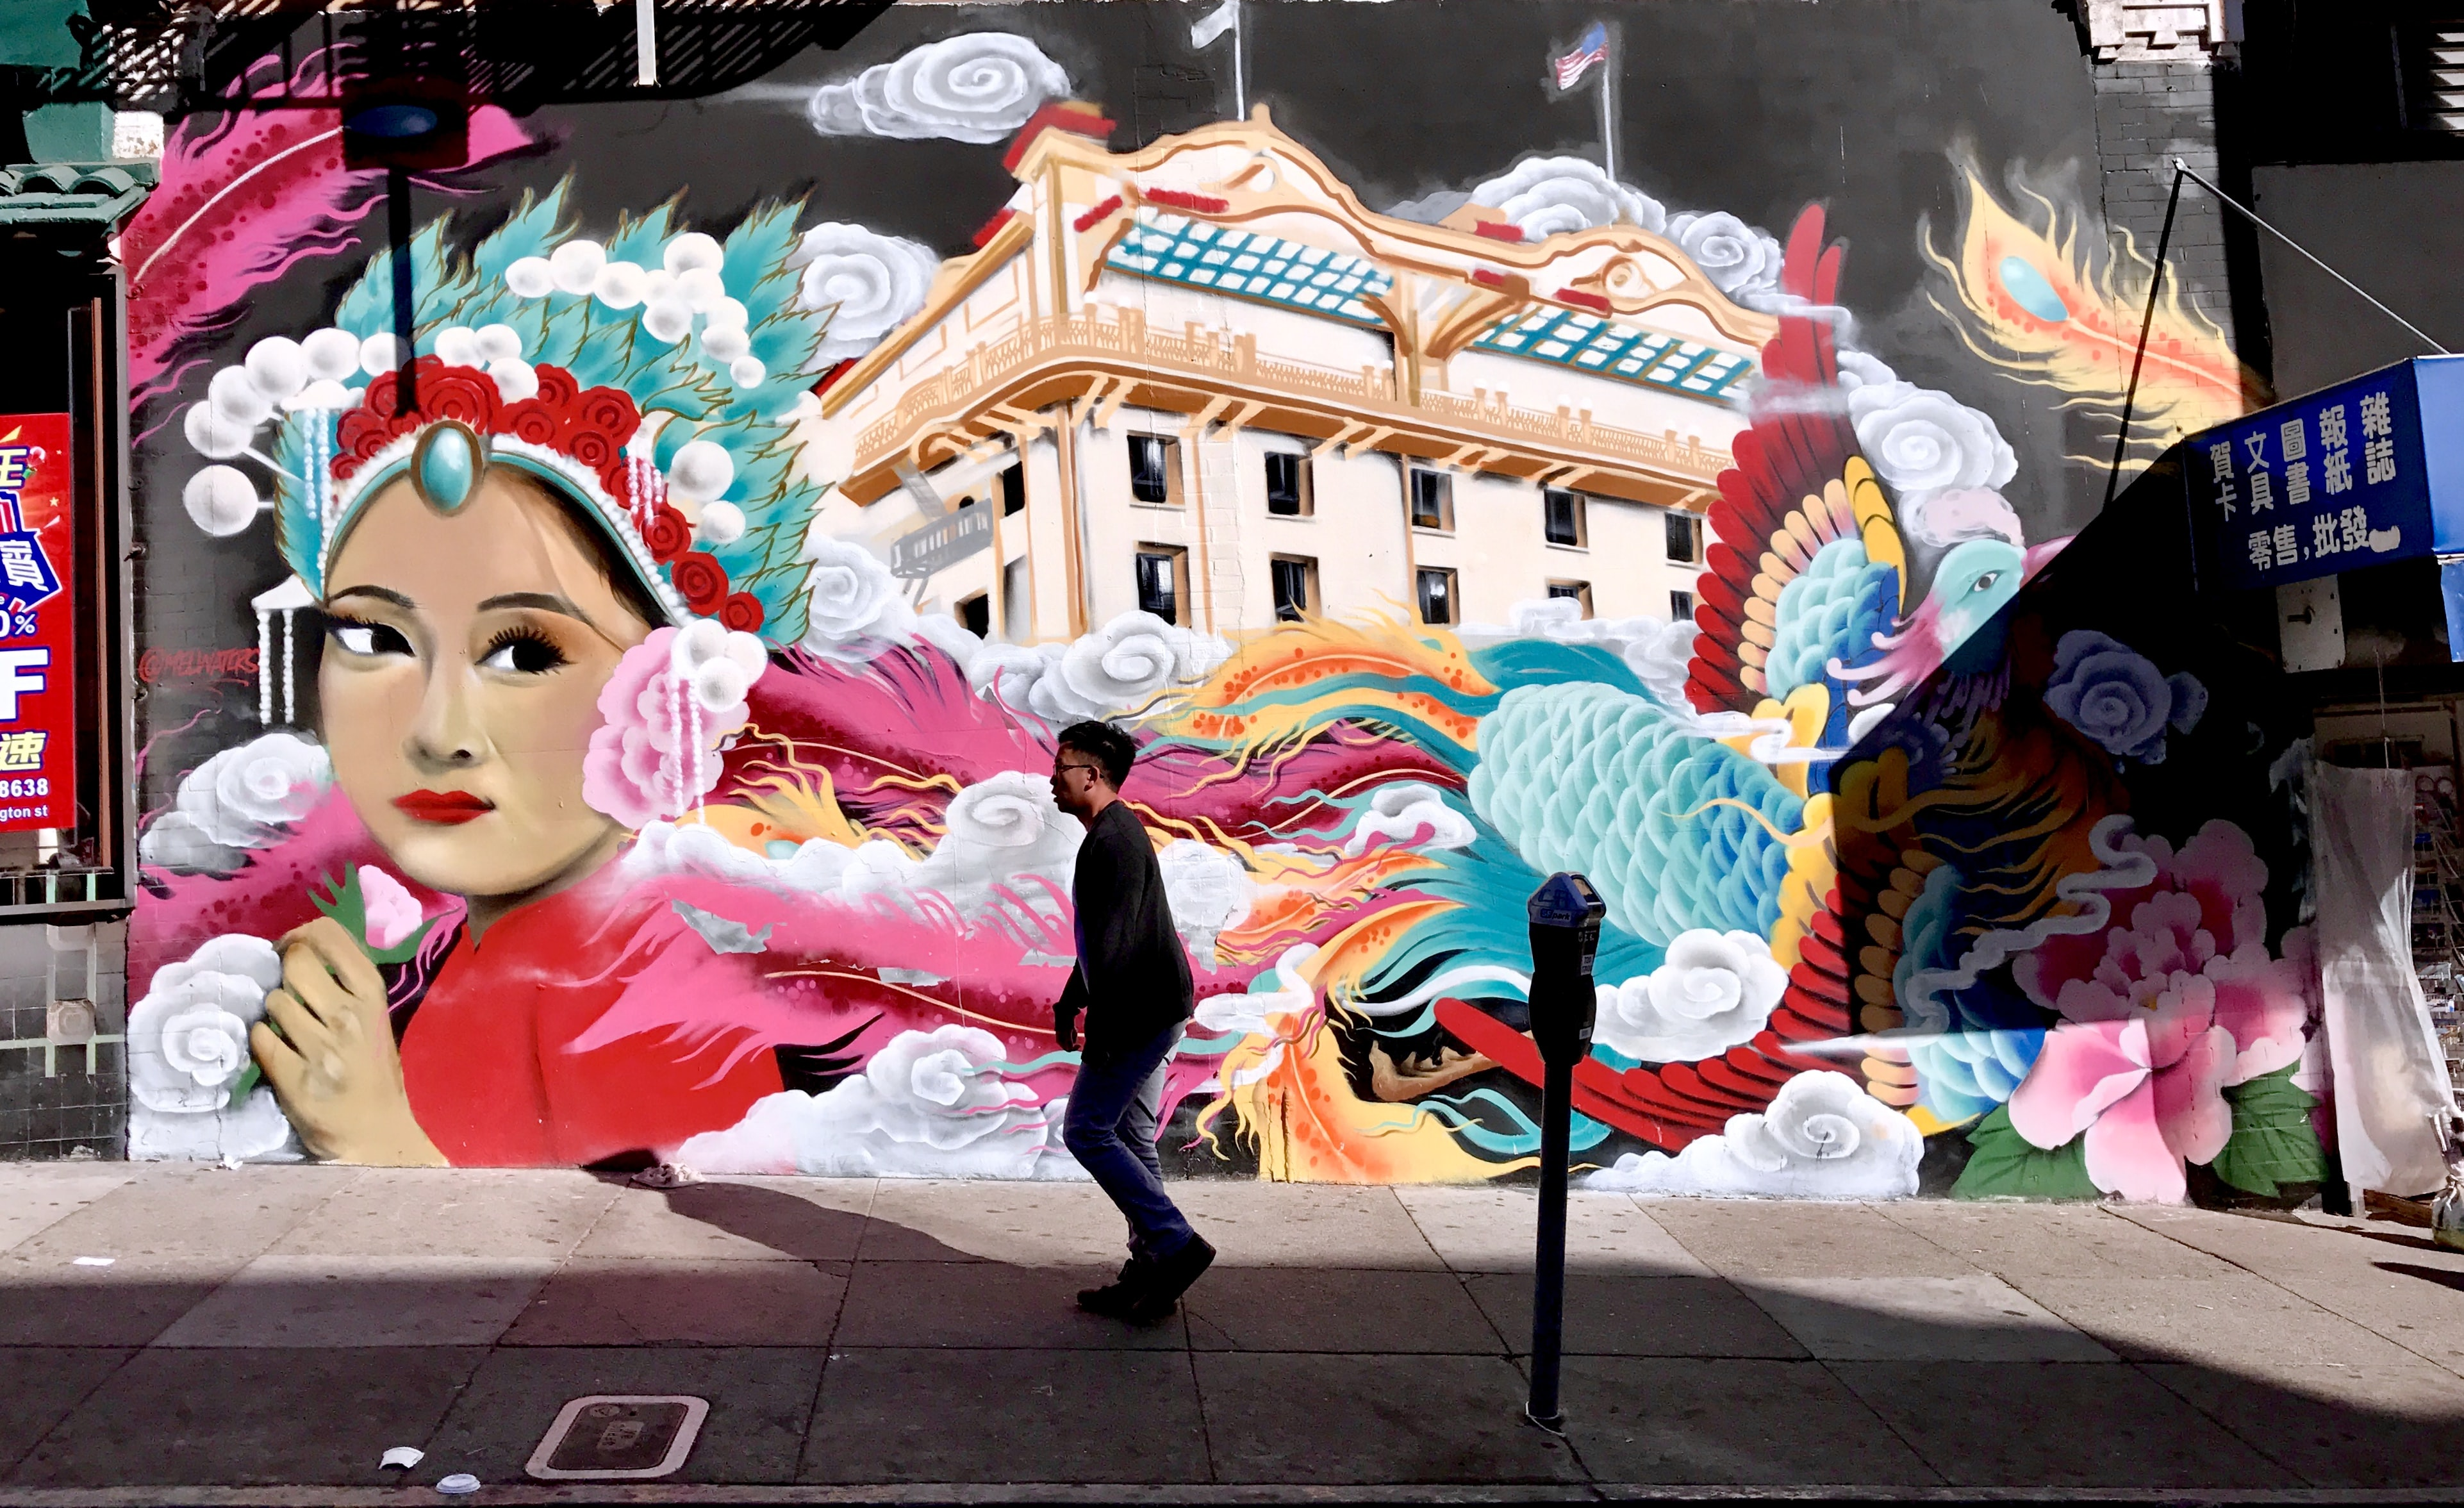 man standing in front of female mural